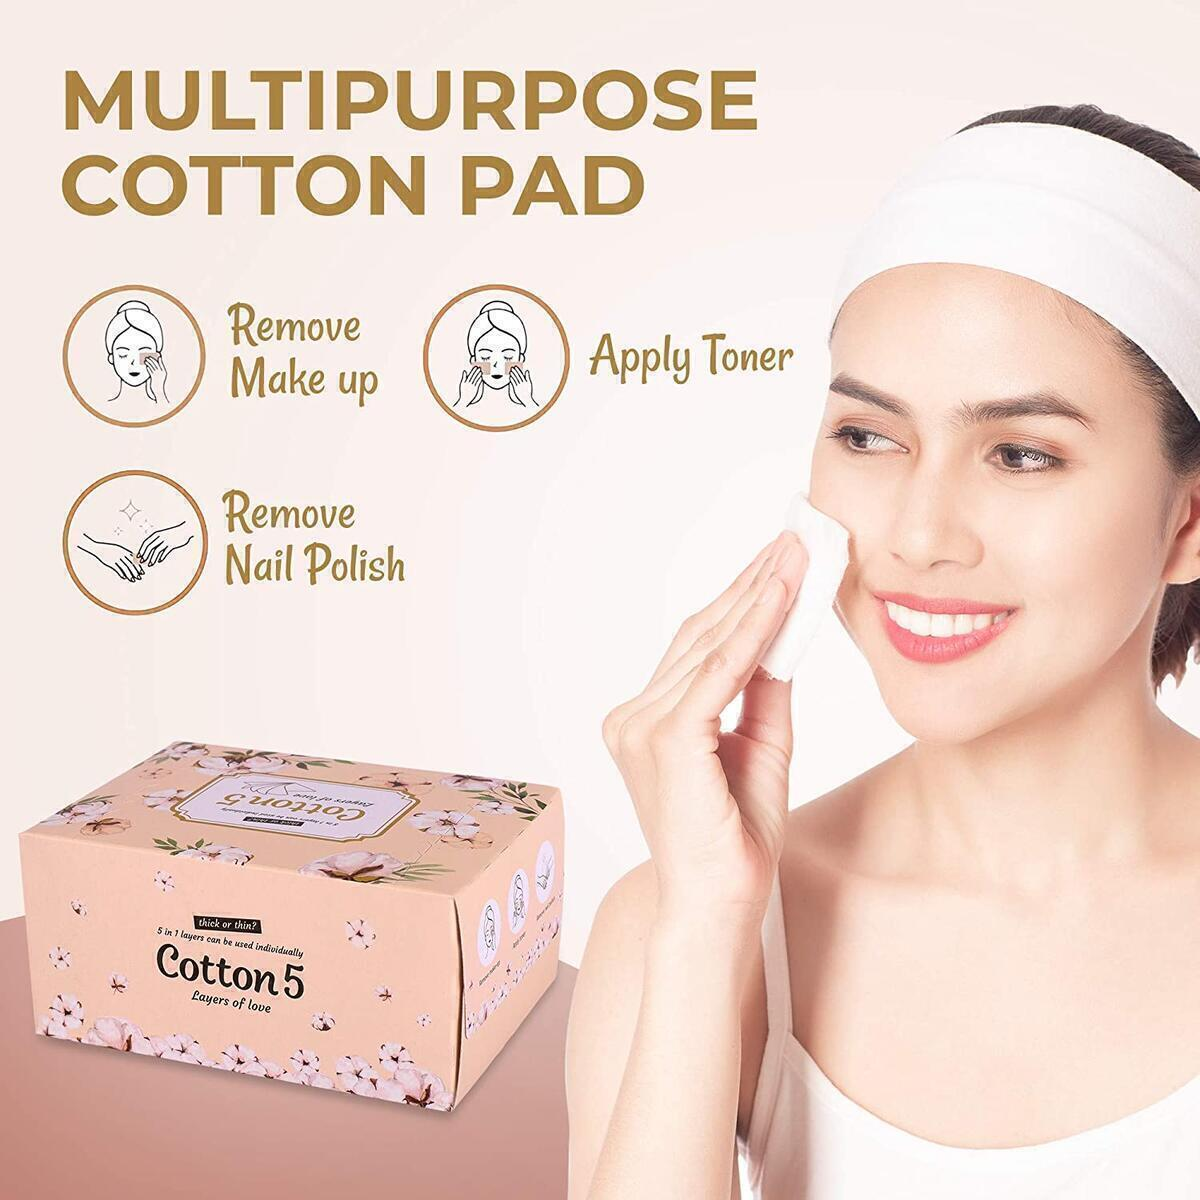 5 Layers Premium Cotton pads-Make-up and Nail Polish Remover, DIY Toner Pad/Lint Free Wipes/Suitable Sensitive Skin/ 100% Pure Cotton/Korean Skin Care Routine